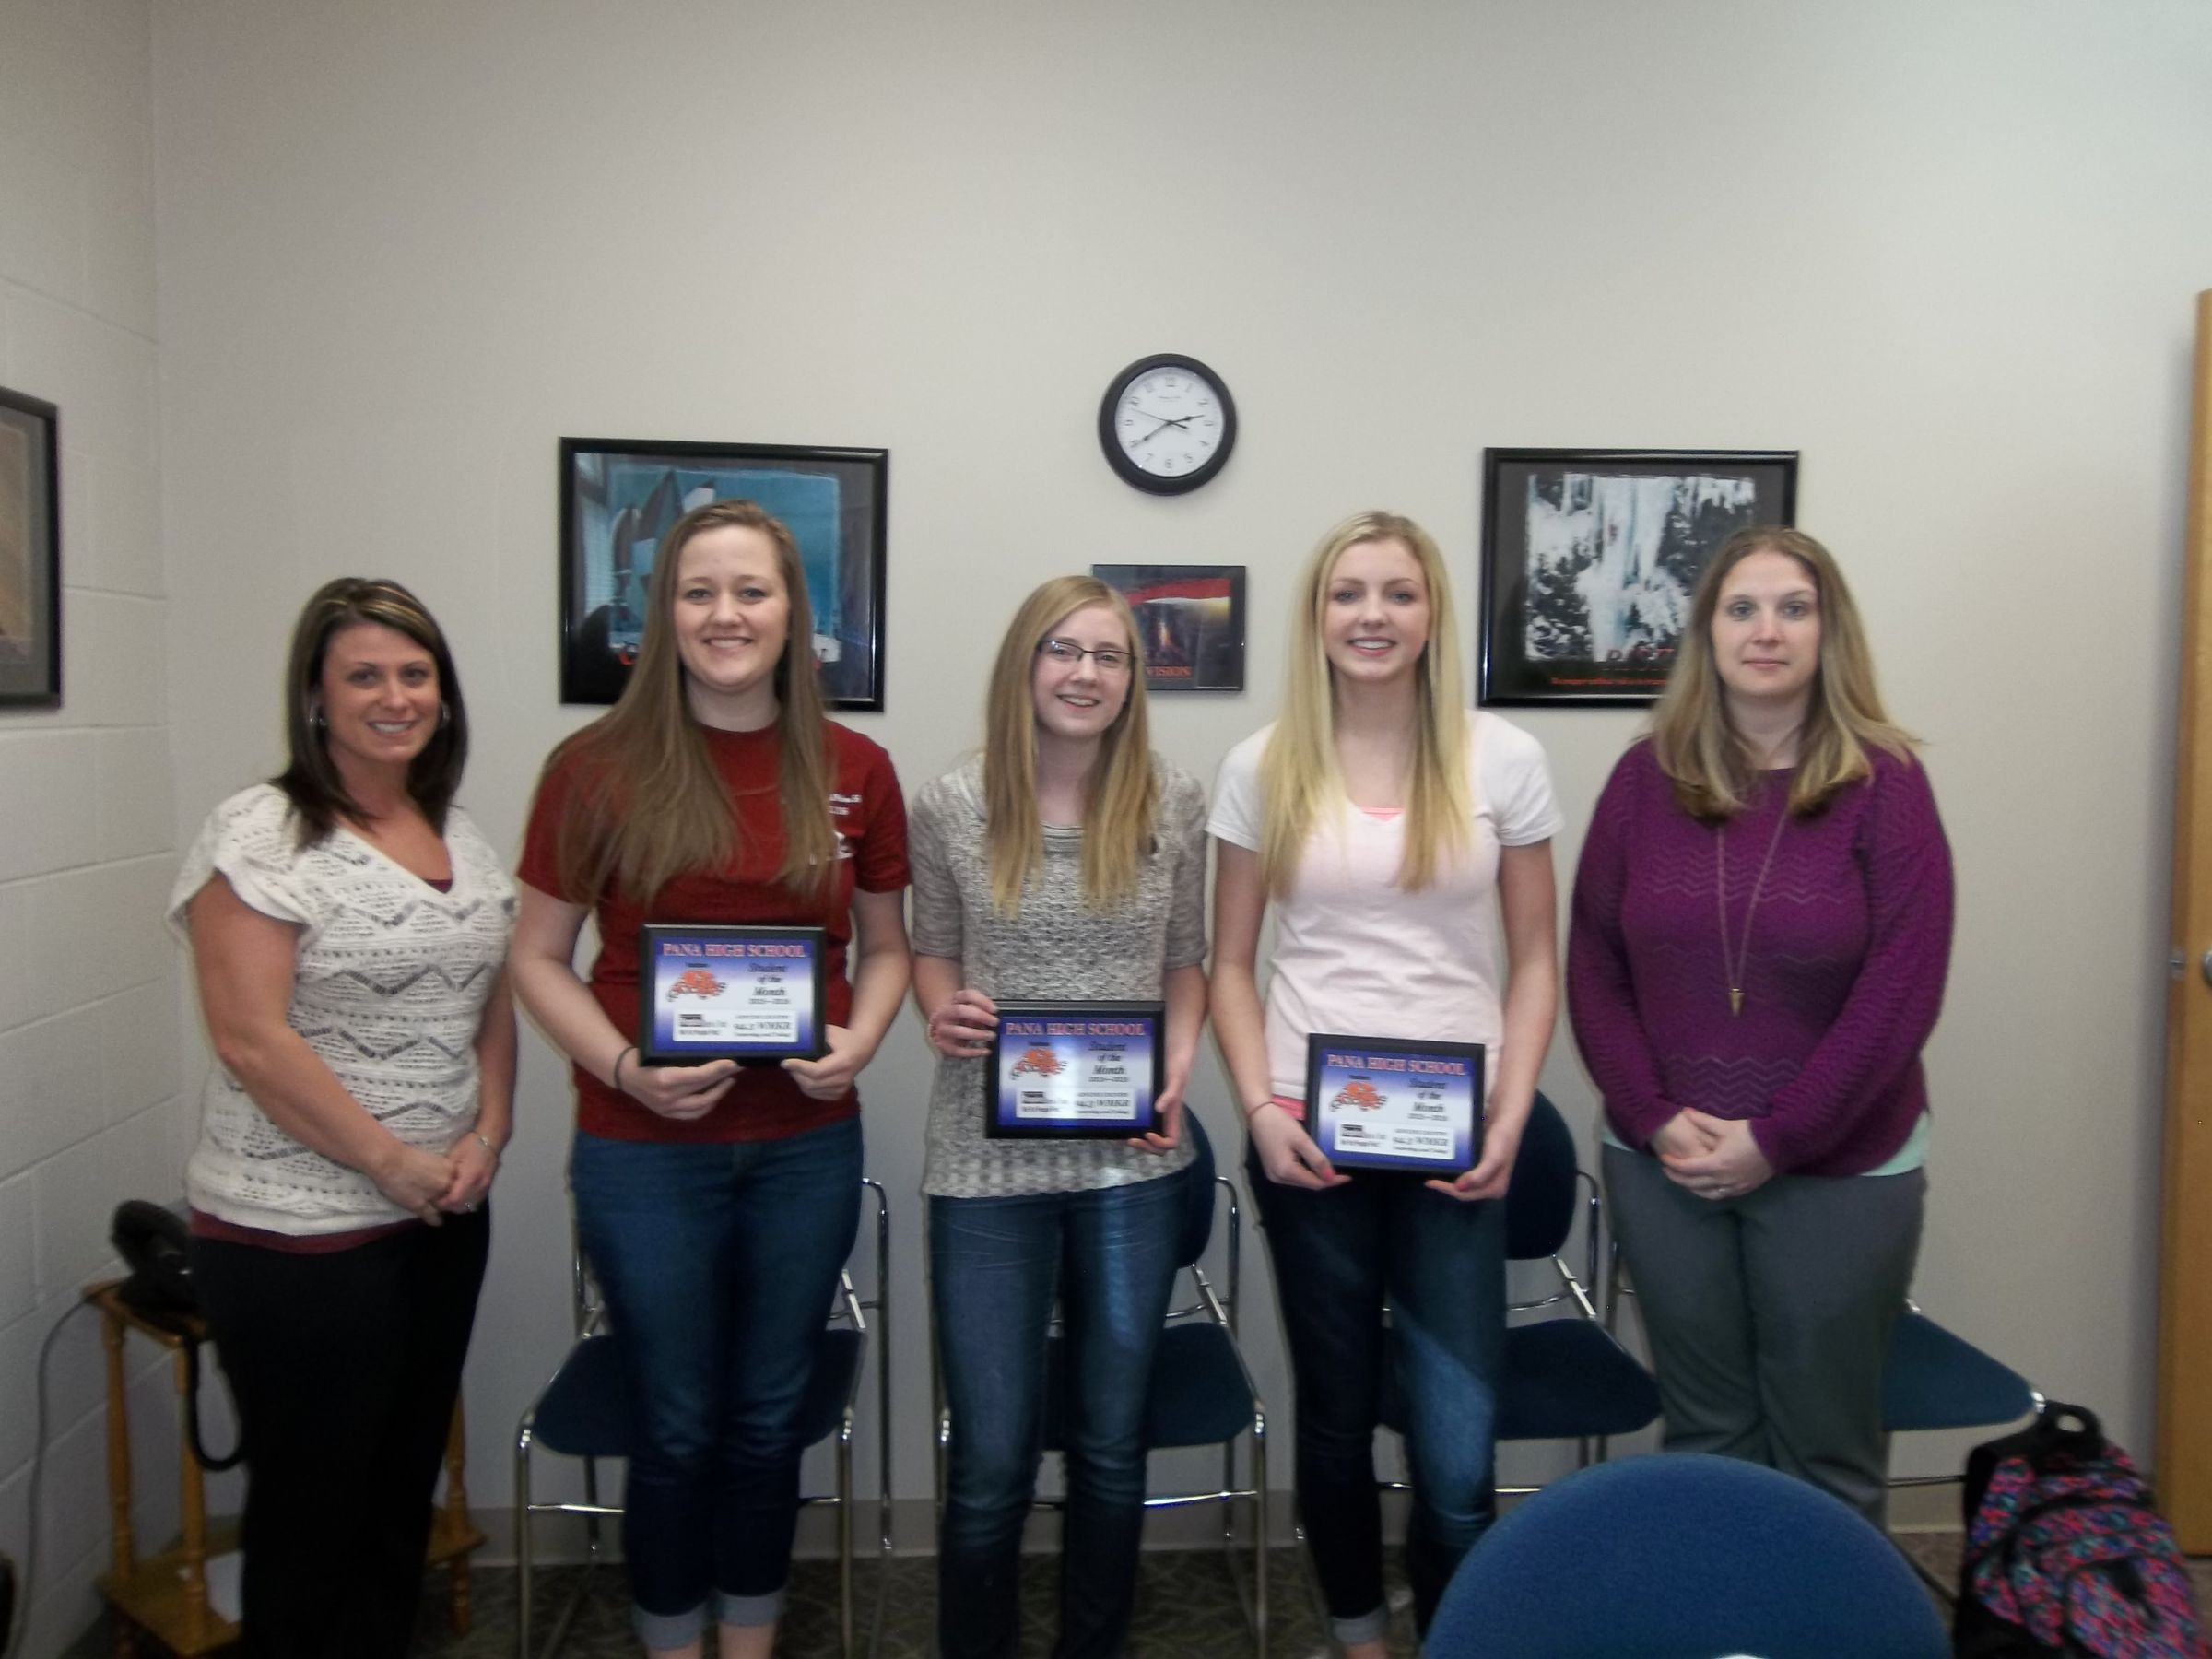 Pana High School Students Of The Month Announced